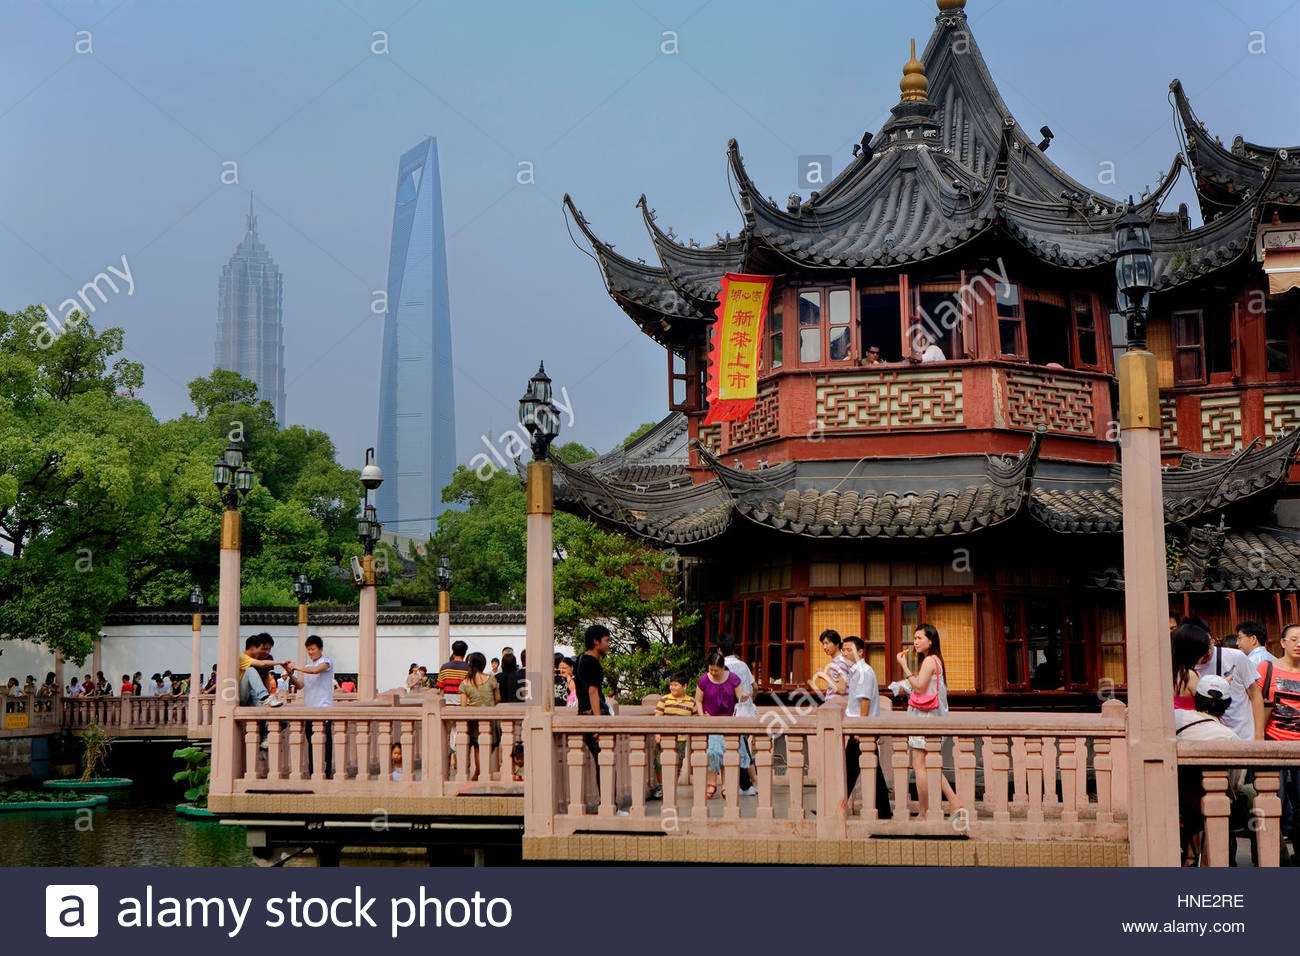 Shanghai: Yu Yuan Bazar. Zigzag Bridge And Huxinting Tea House At Right.  Pudong Skyline In Background With Jin Mao Building And Shanghai World